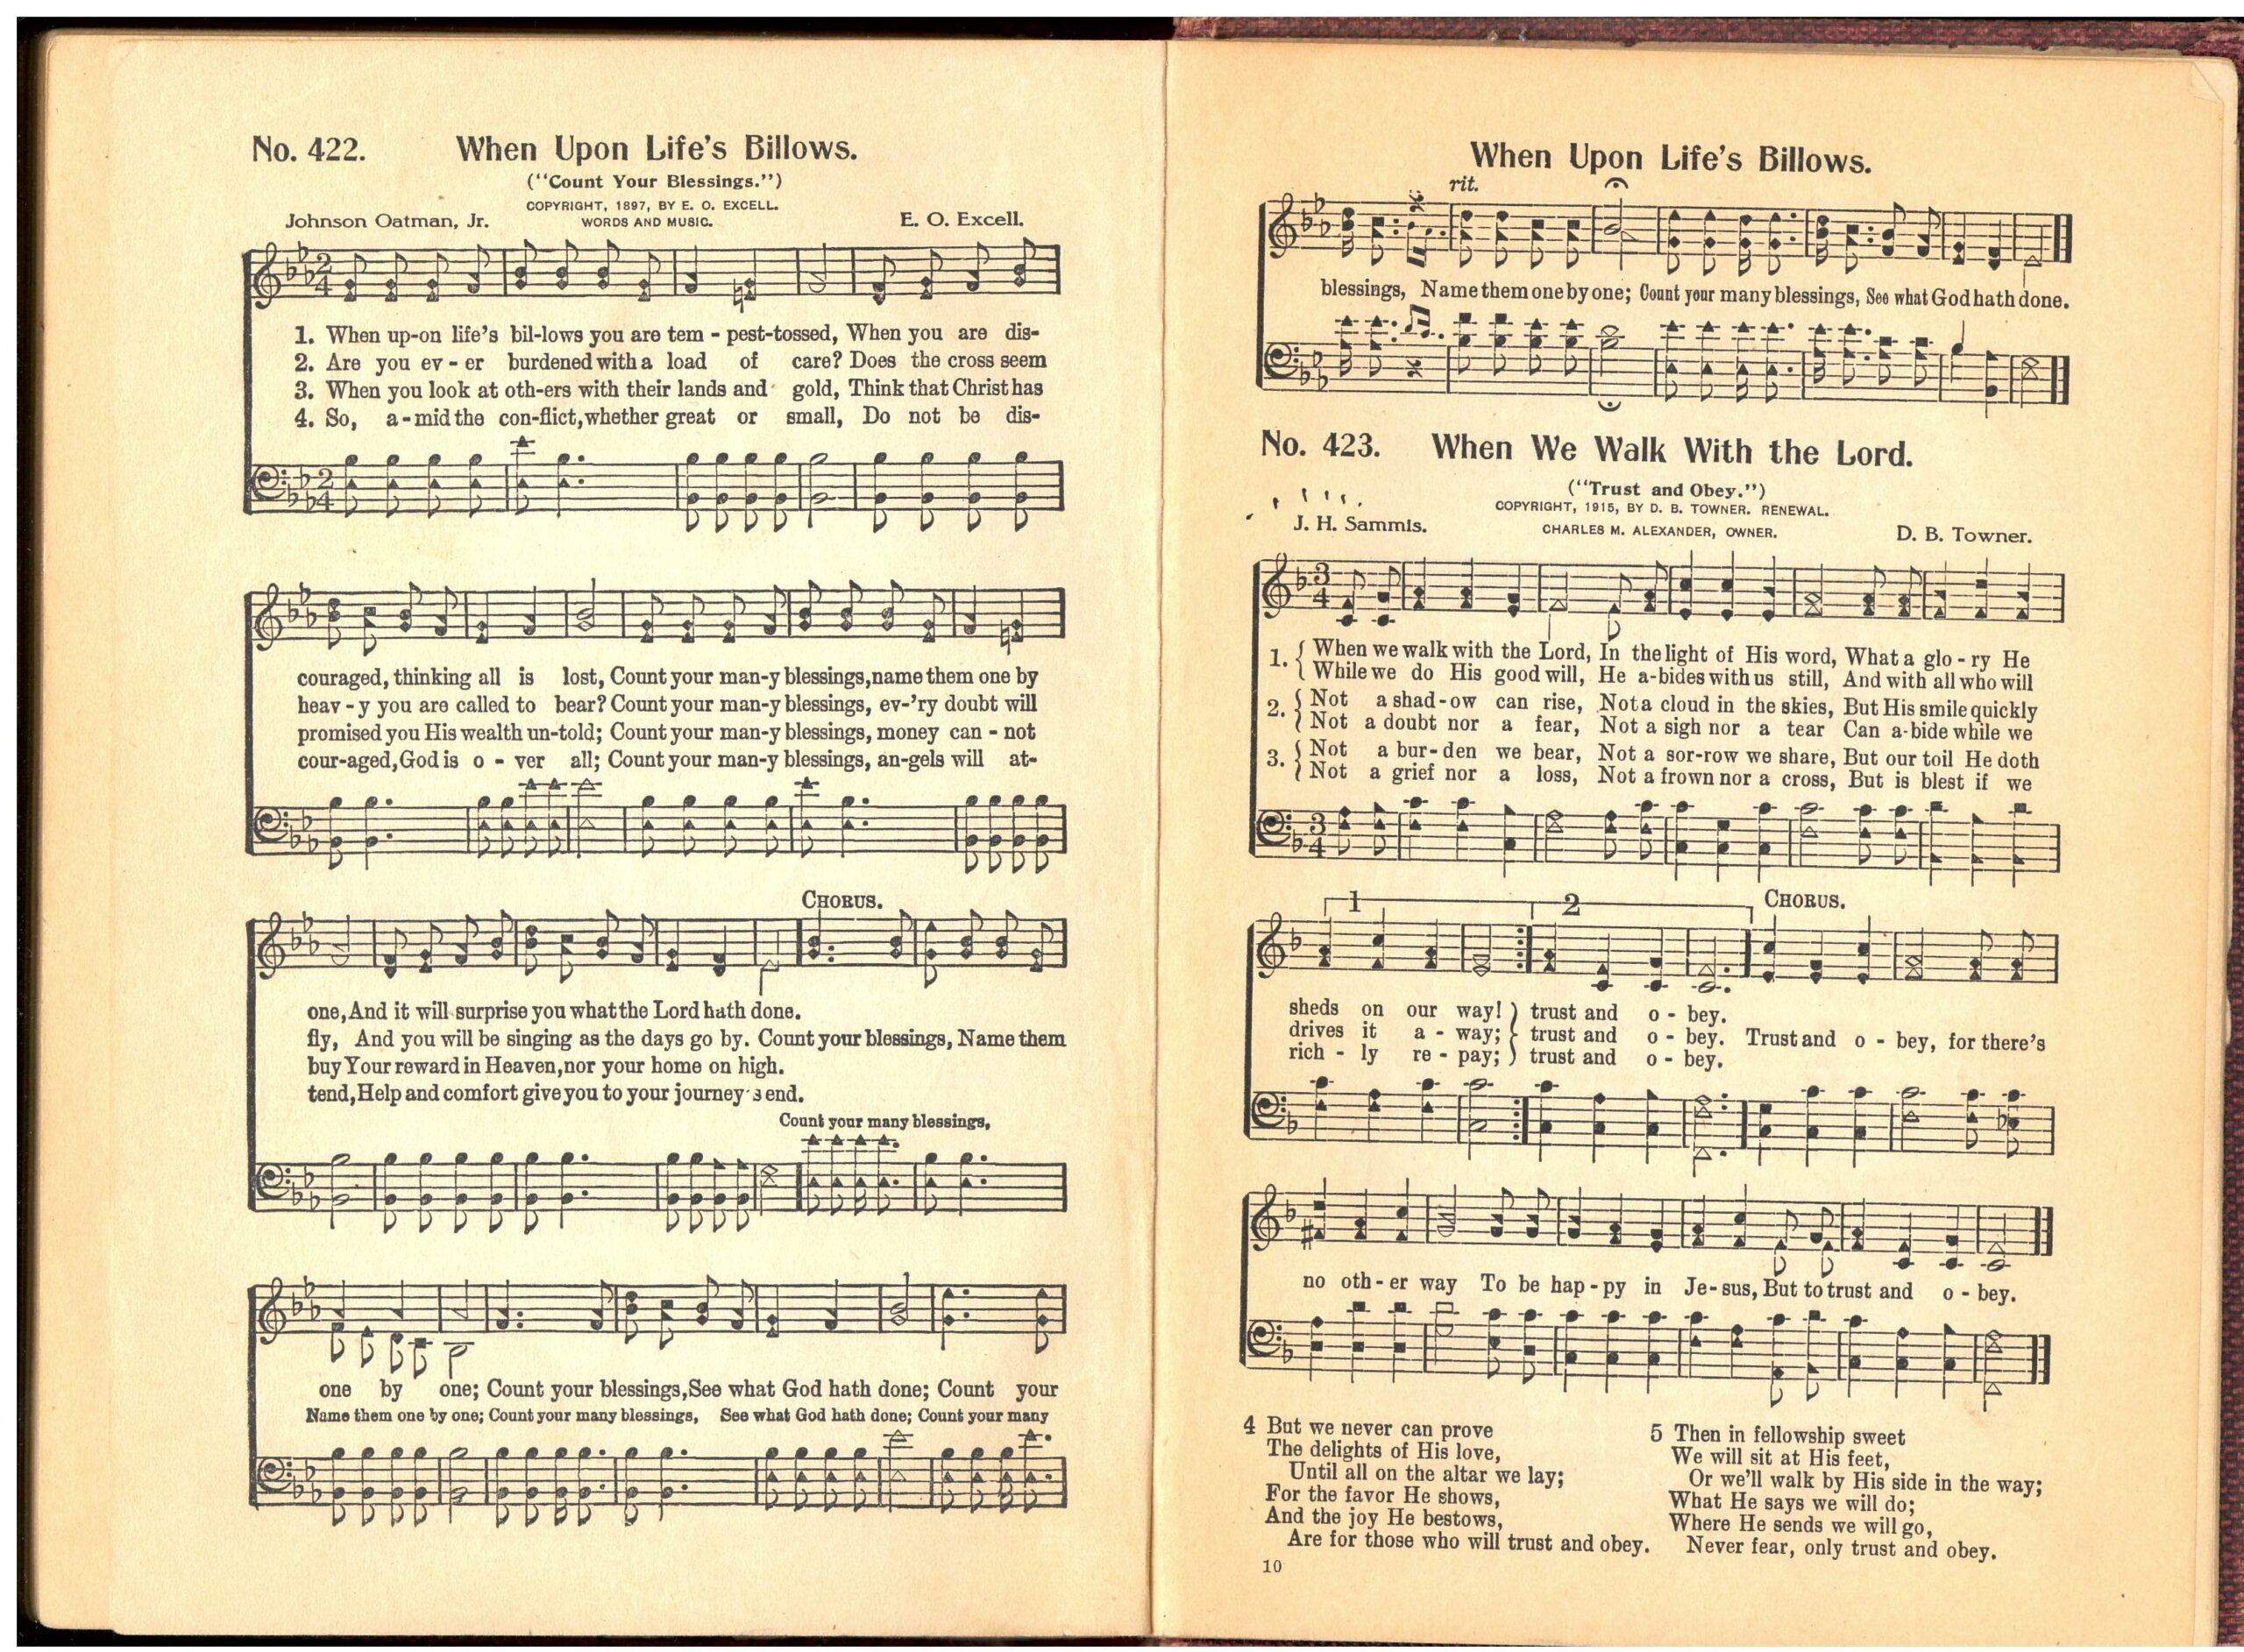 Excell and Alexander side-by-side in Great Songs of the Church